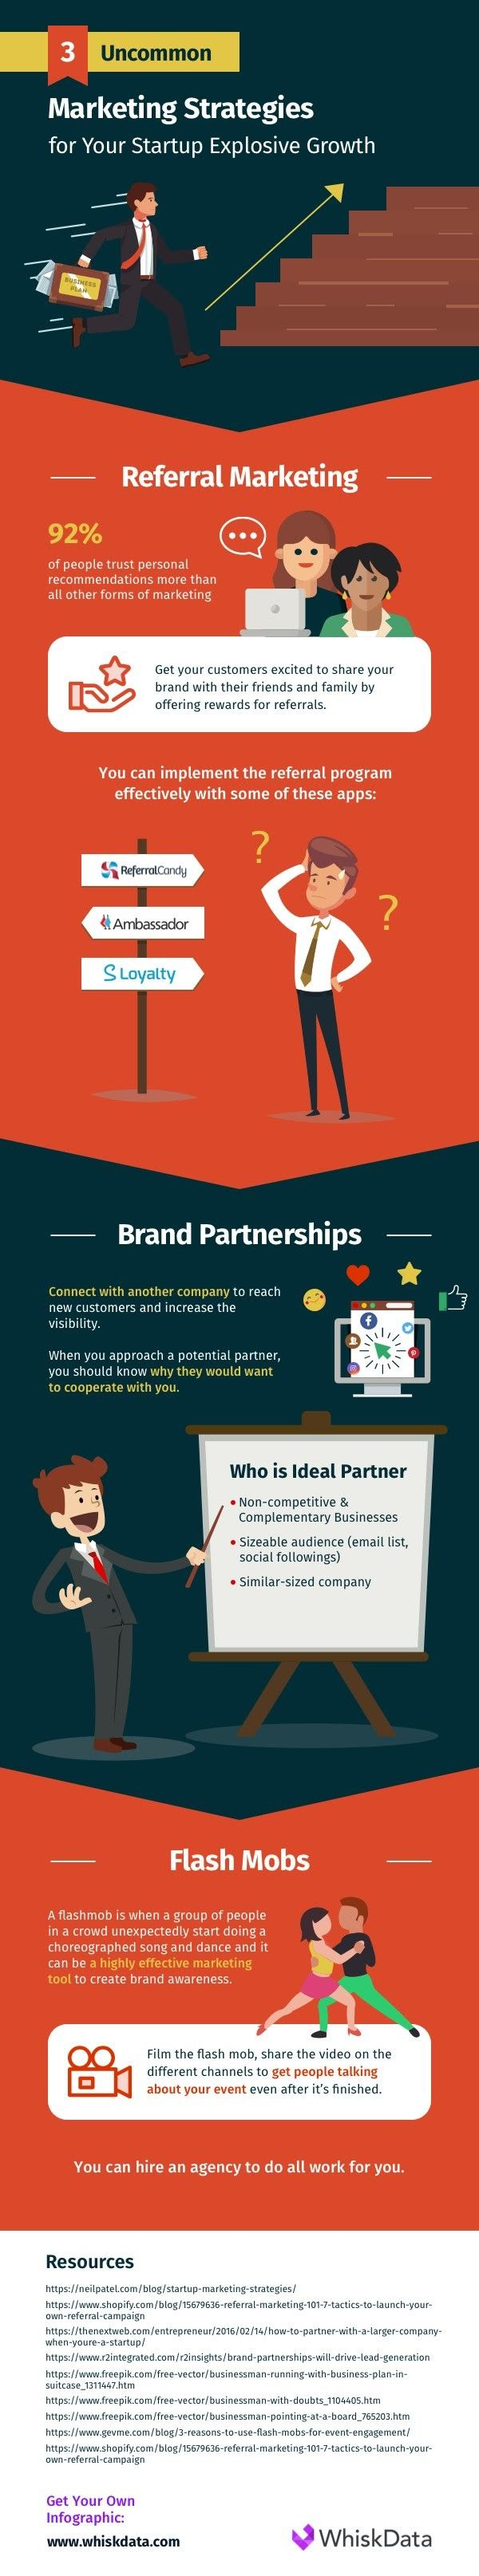 3 Uncommon Marketing Strategies for Your Startup Explosive Growth - #Infographic